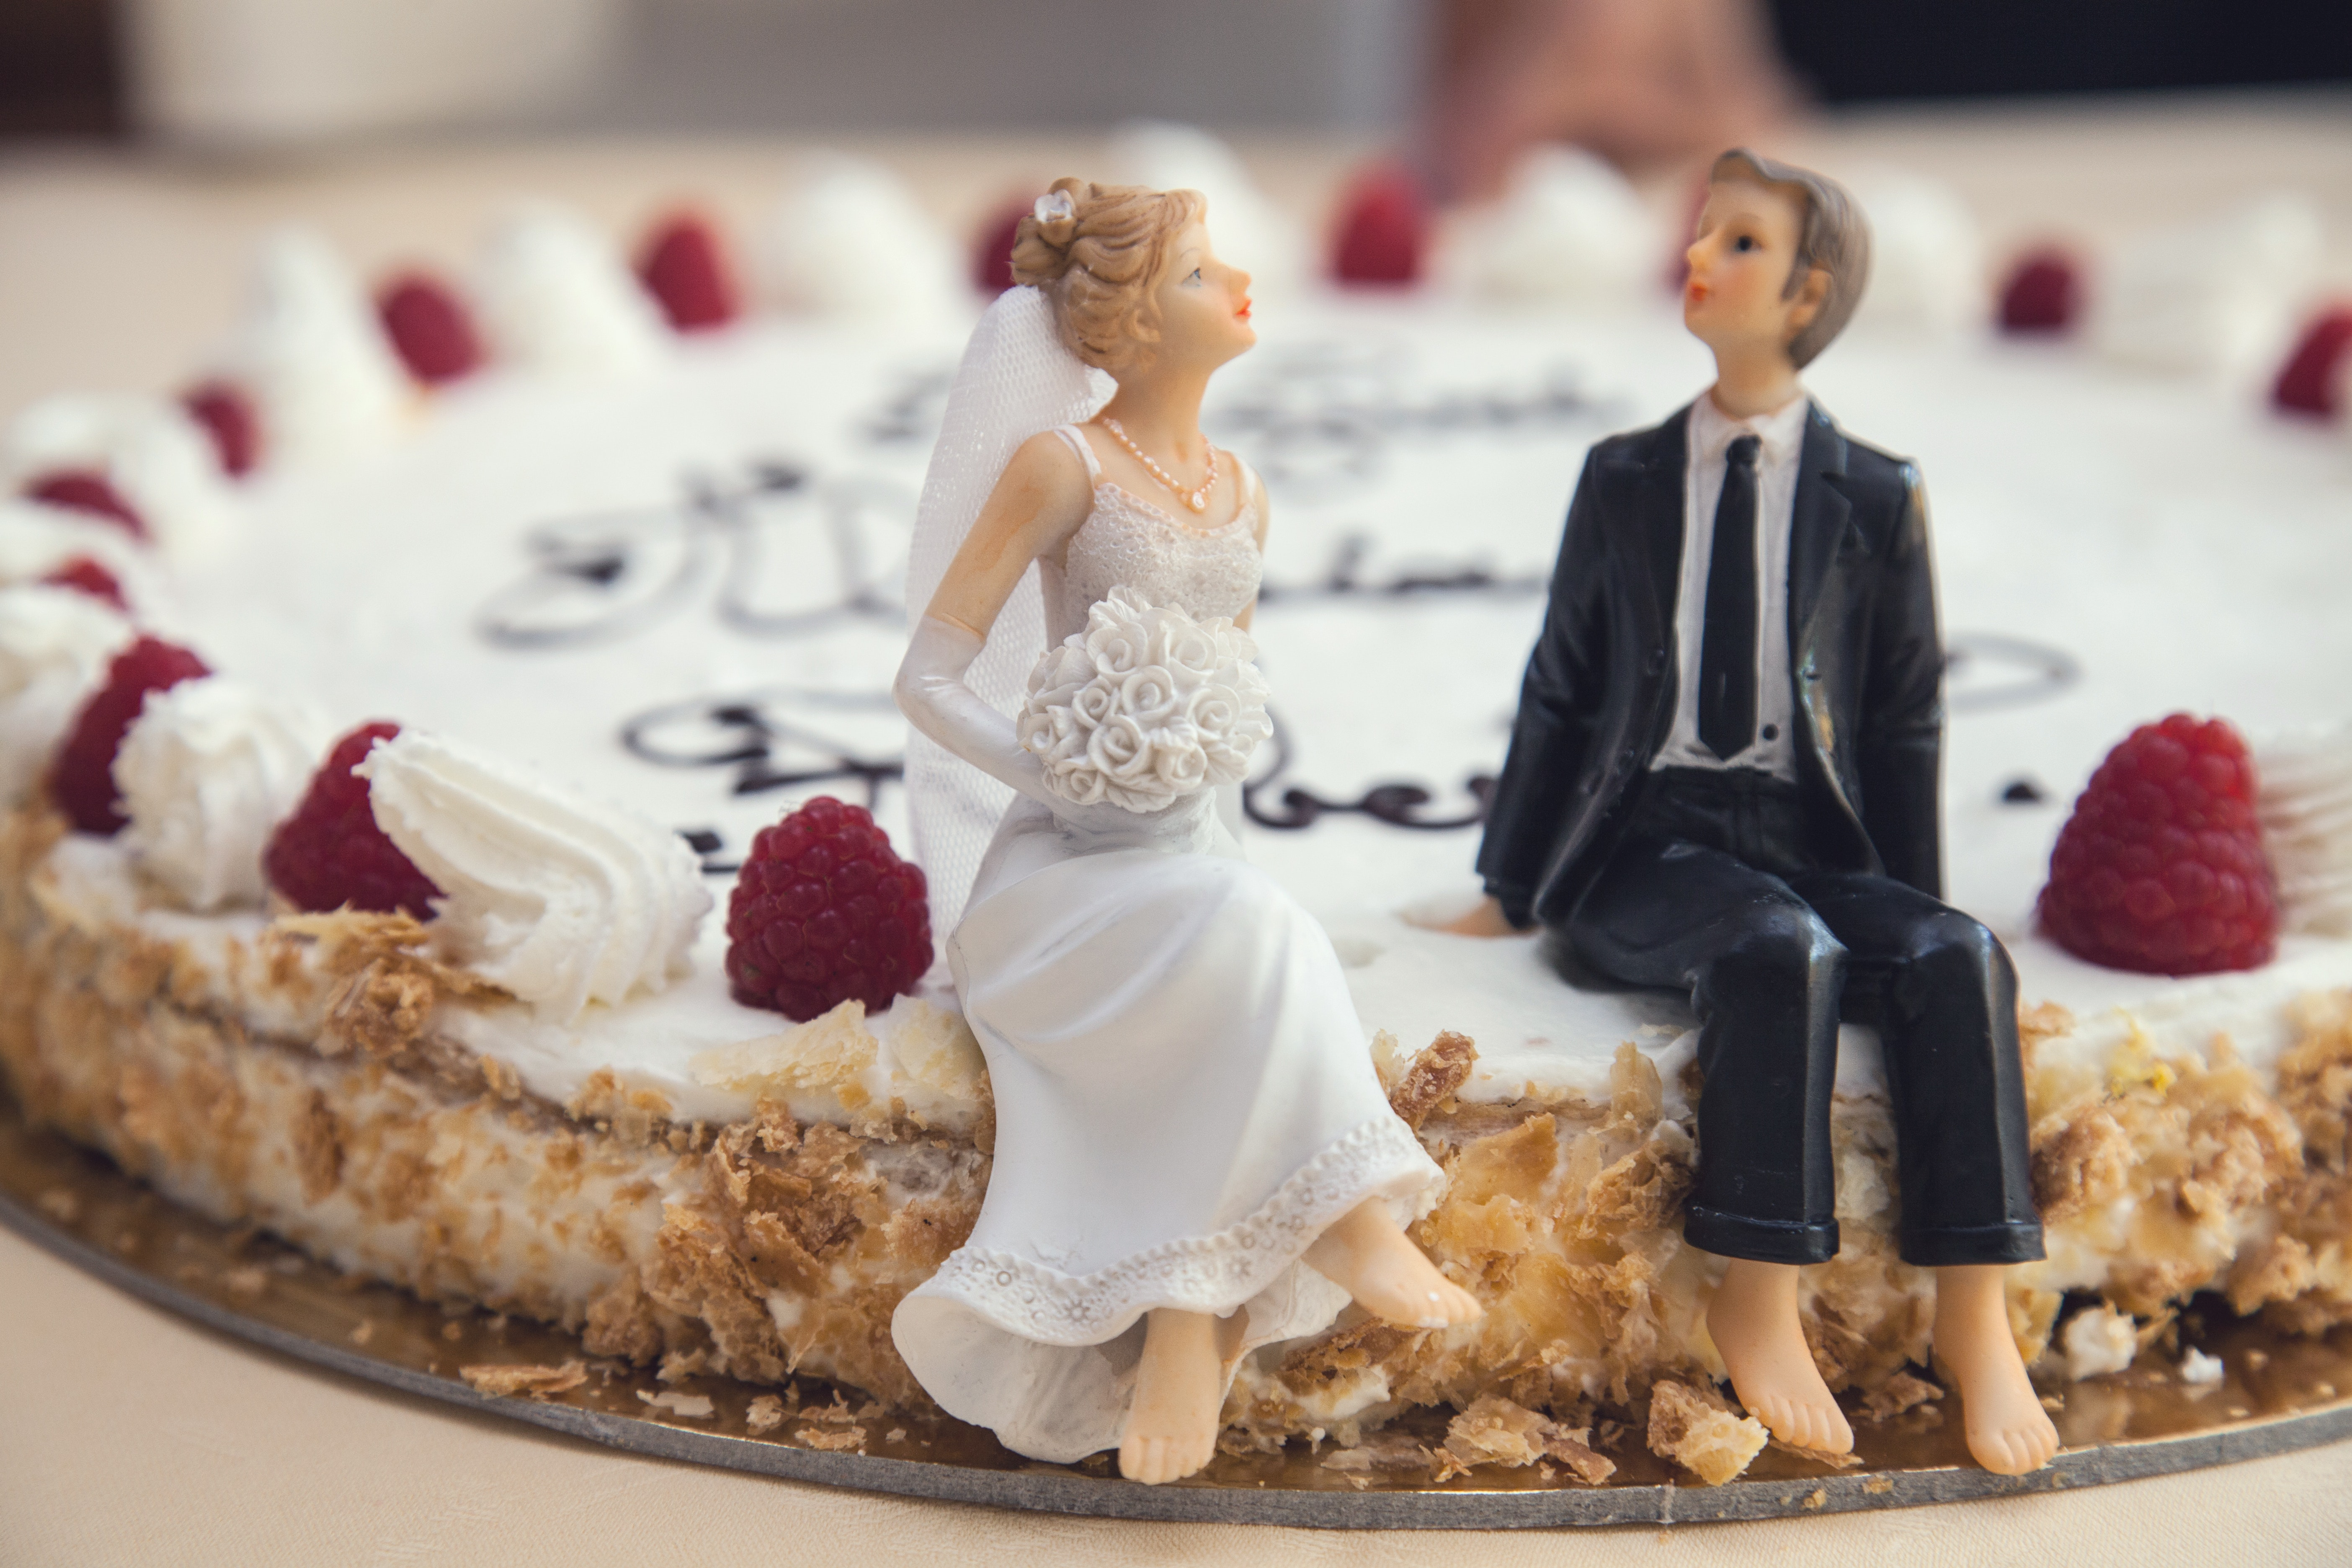 The cake sitting in front of their choice of wedding bands in Scotland.